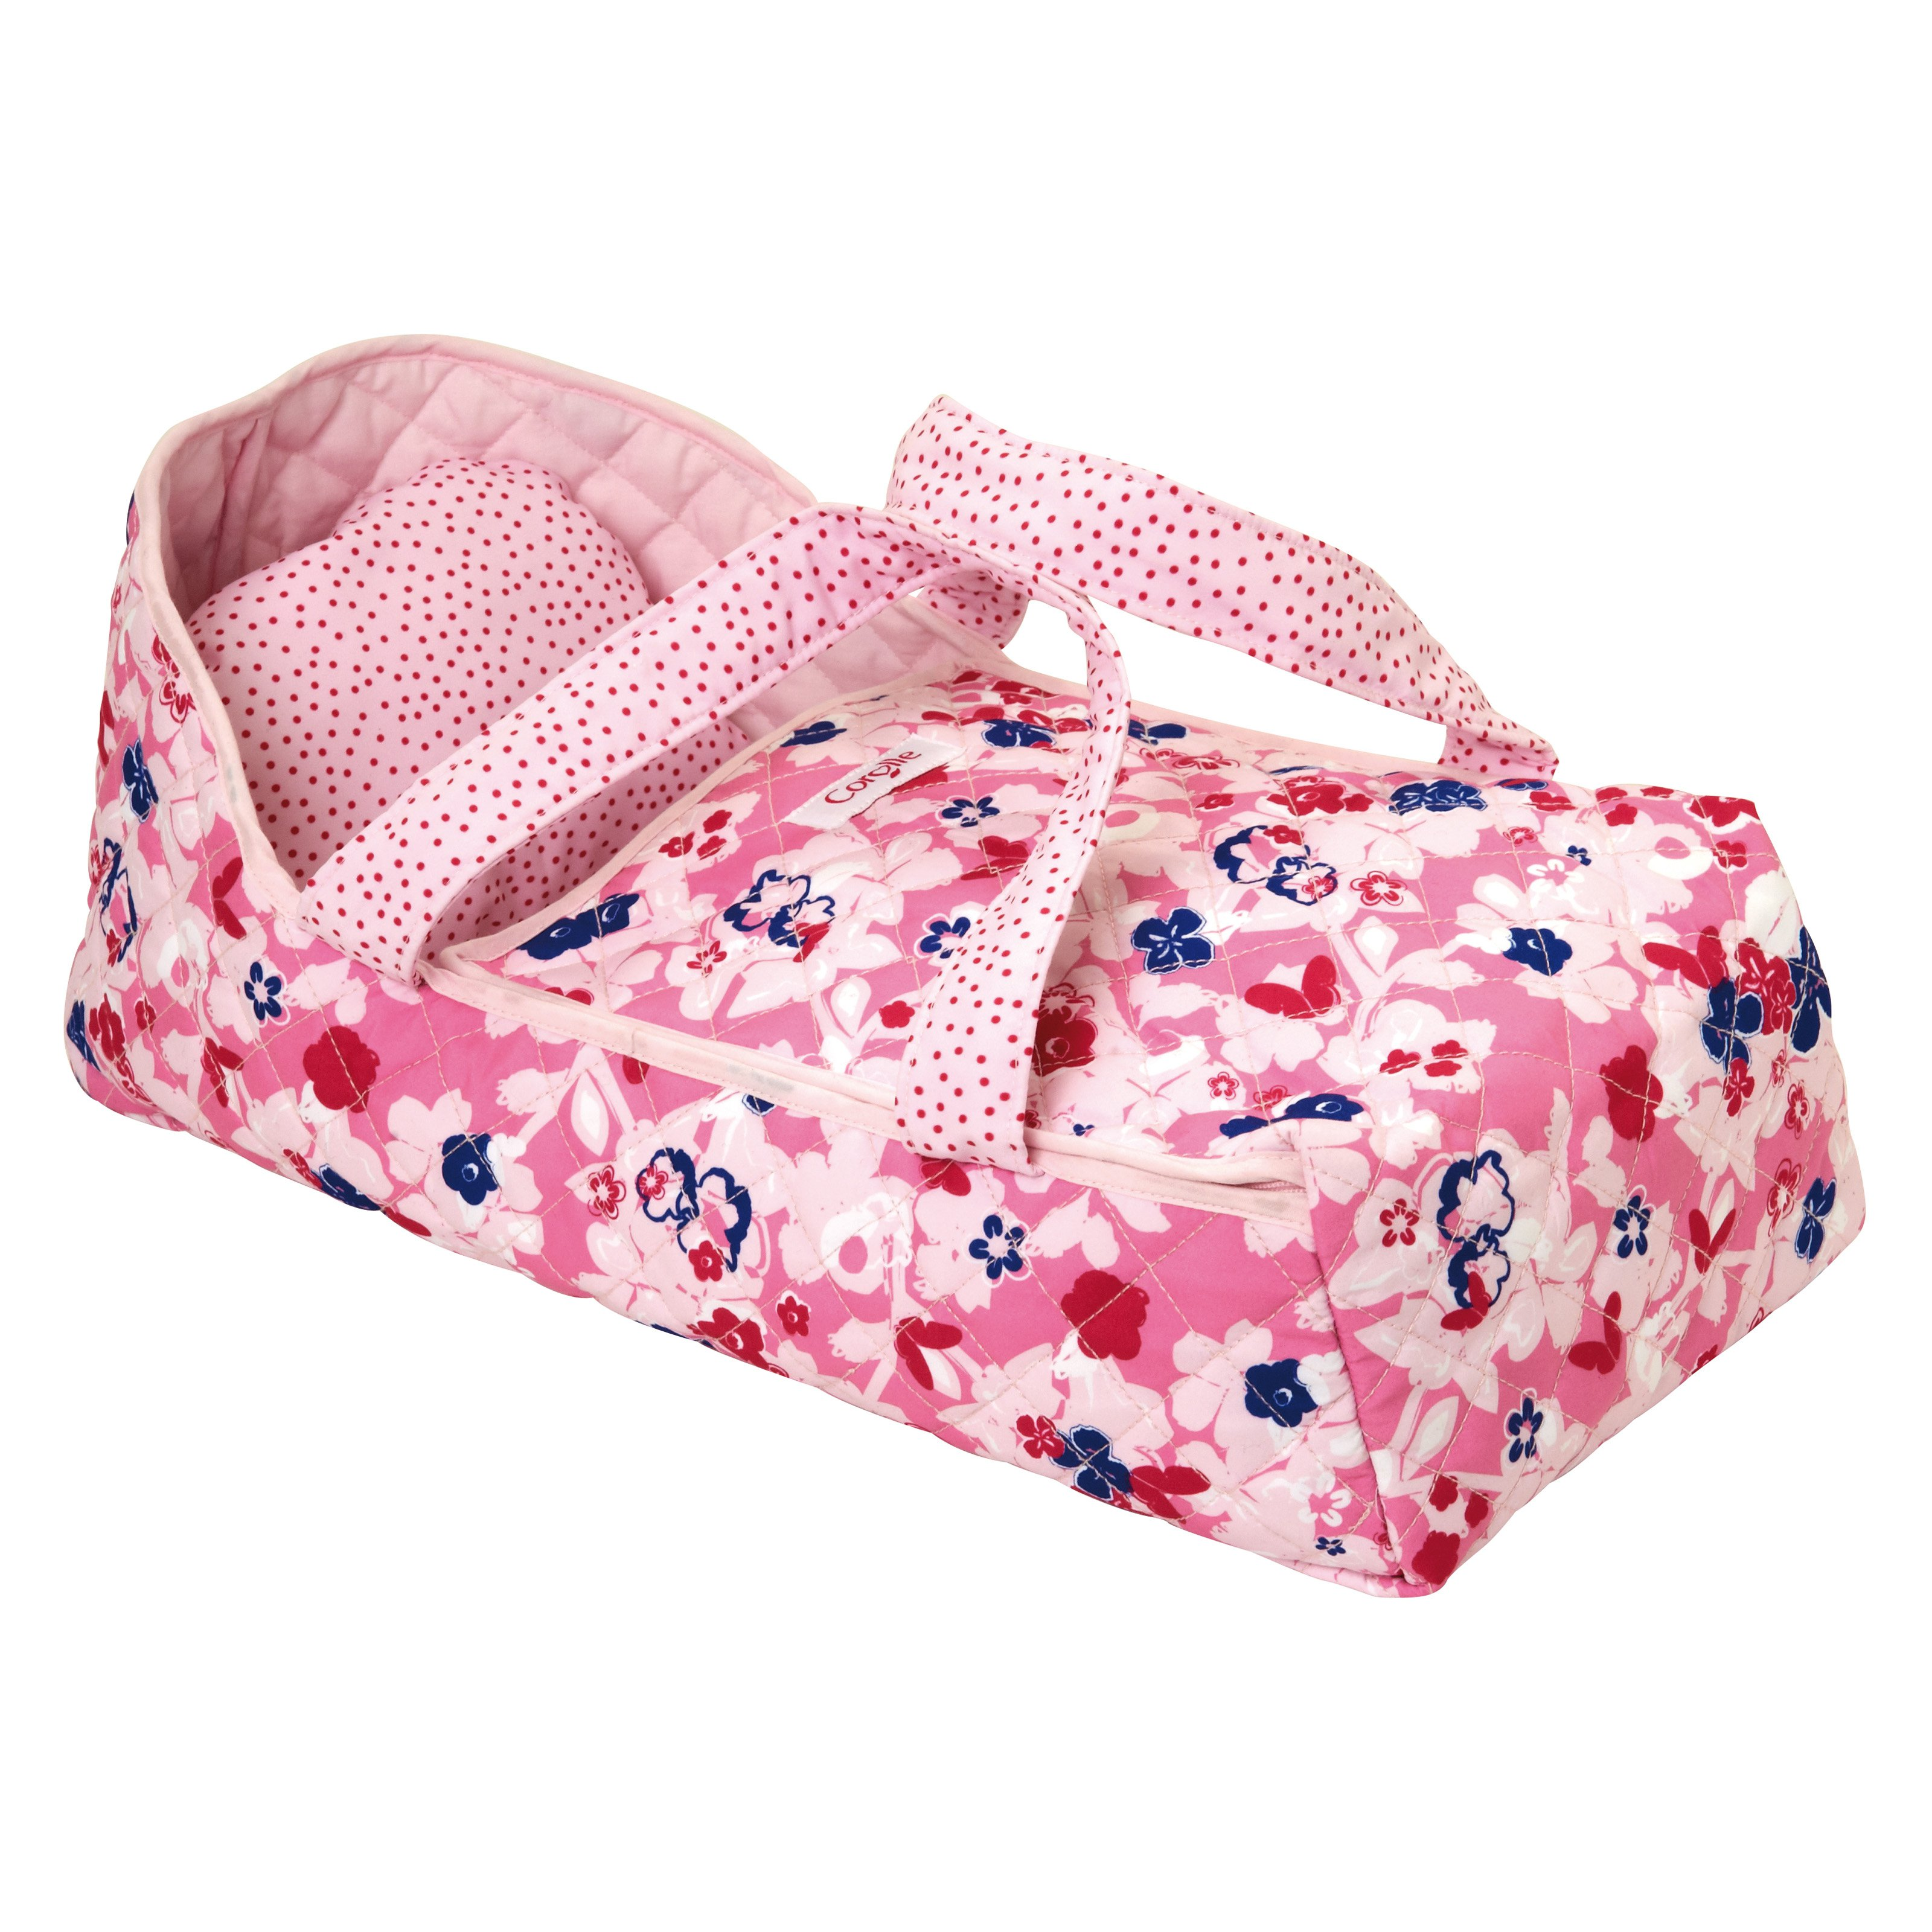 Corolle Pink Carry Doll Bed